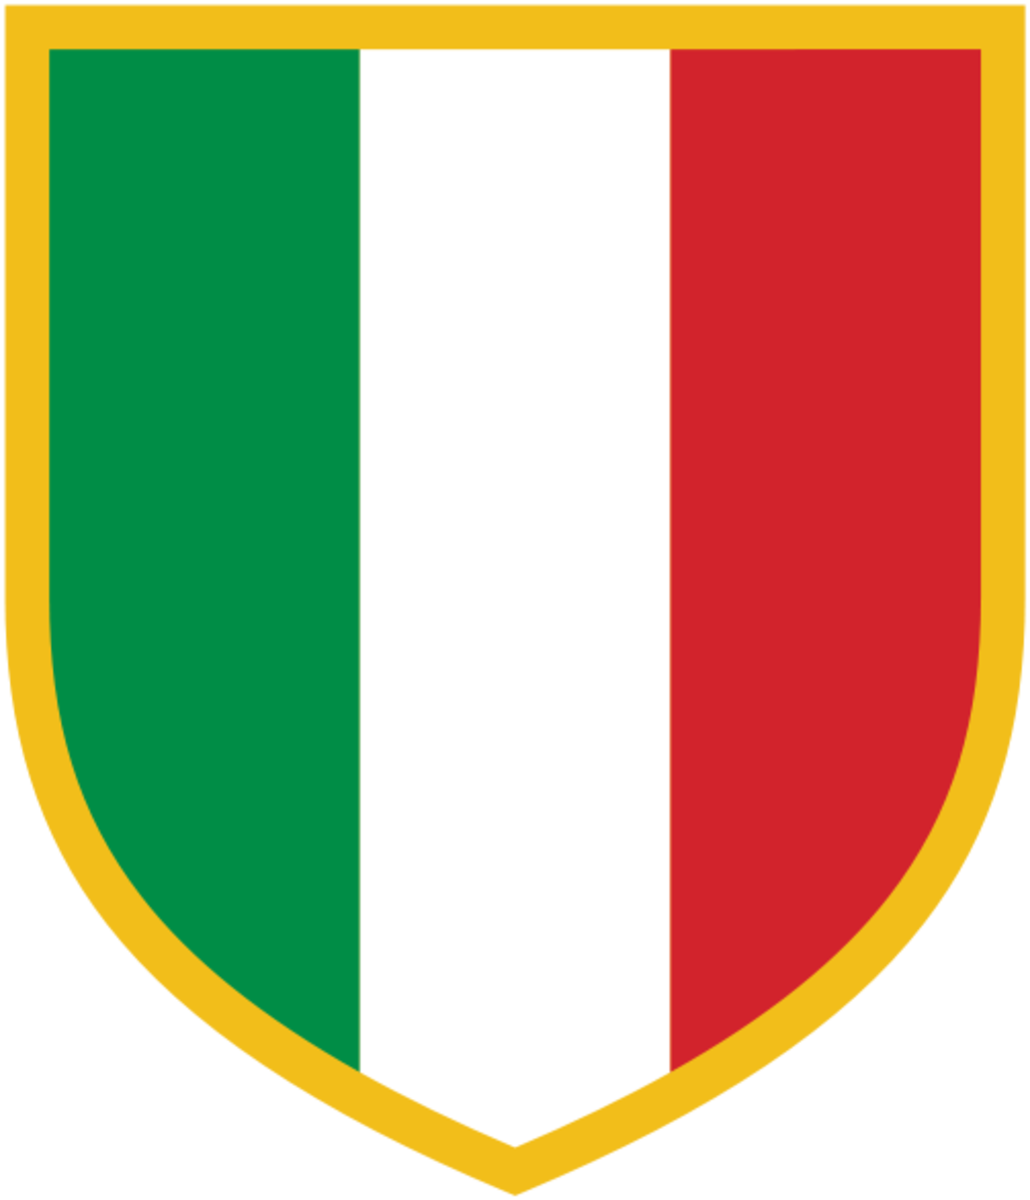 Whenever a team wins the Scudetto, they wear this logo on their team shirts, as a mark of their status as champions.